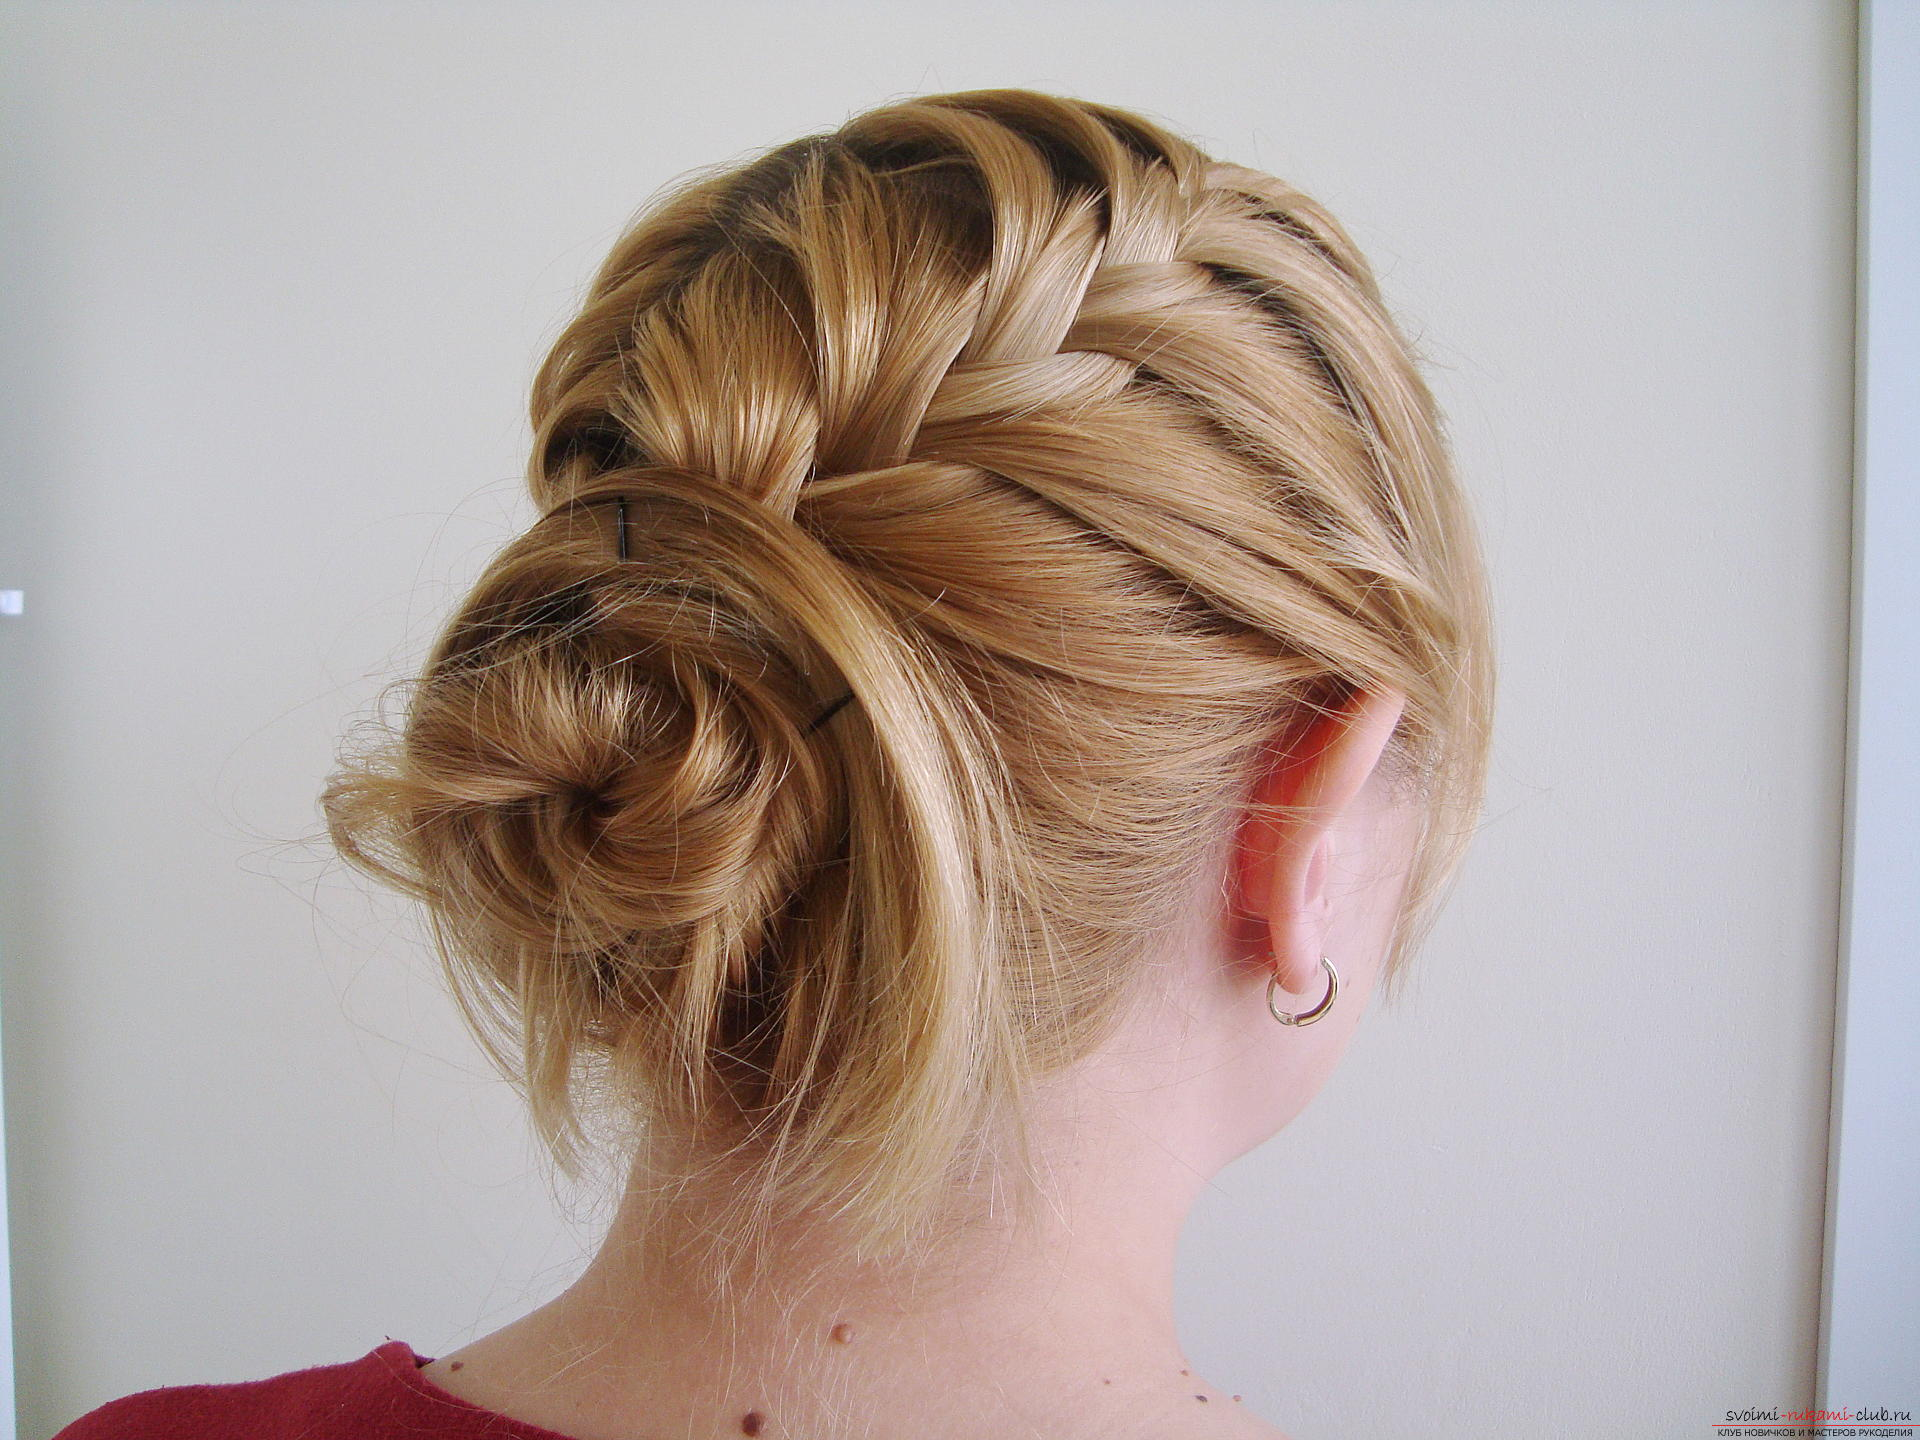 Master class hairstyles with photos will help you create the most beautiful hairstyle for the new year. Hairstyles for medium hair on the basis of braids will last the whole evening and porozyat originality .. Picture number 1